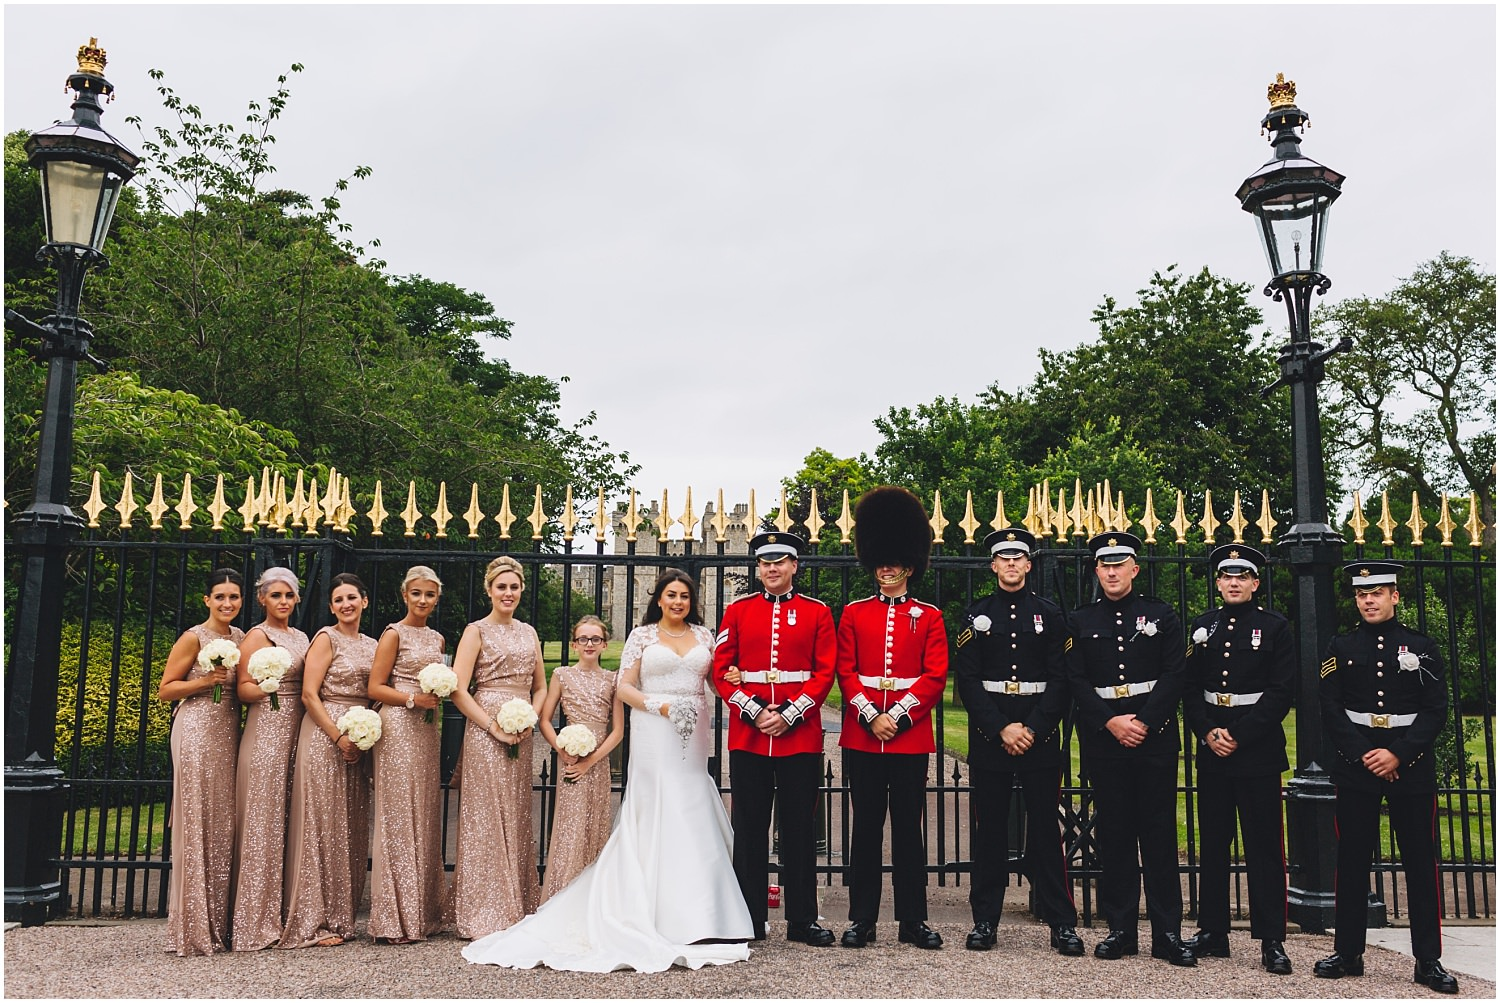 Windsor wedding. Bride and groom with bridal party in front of the gates at Windsor Castle